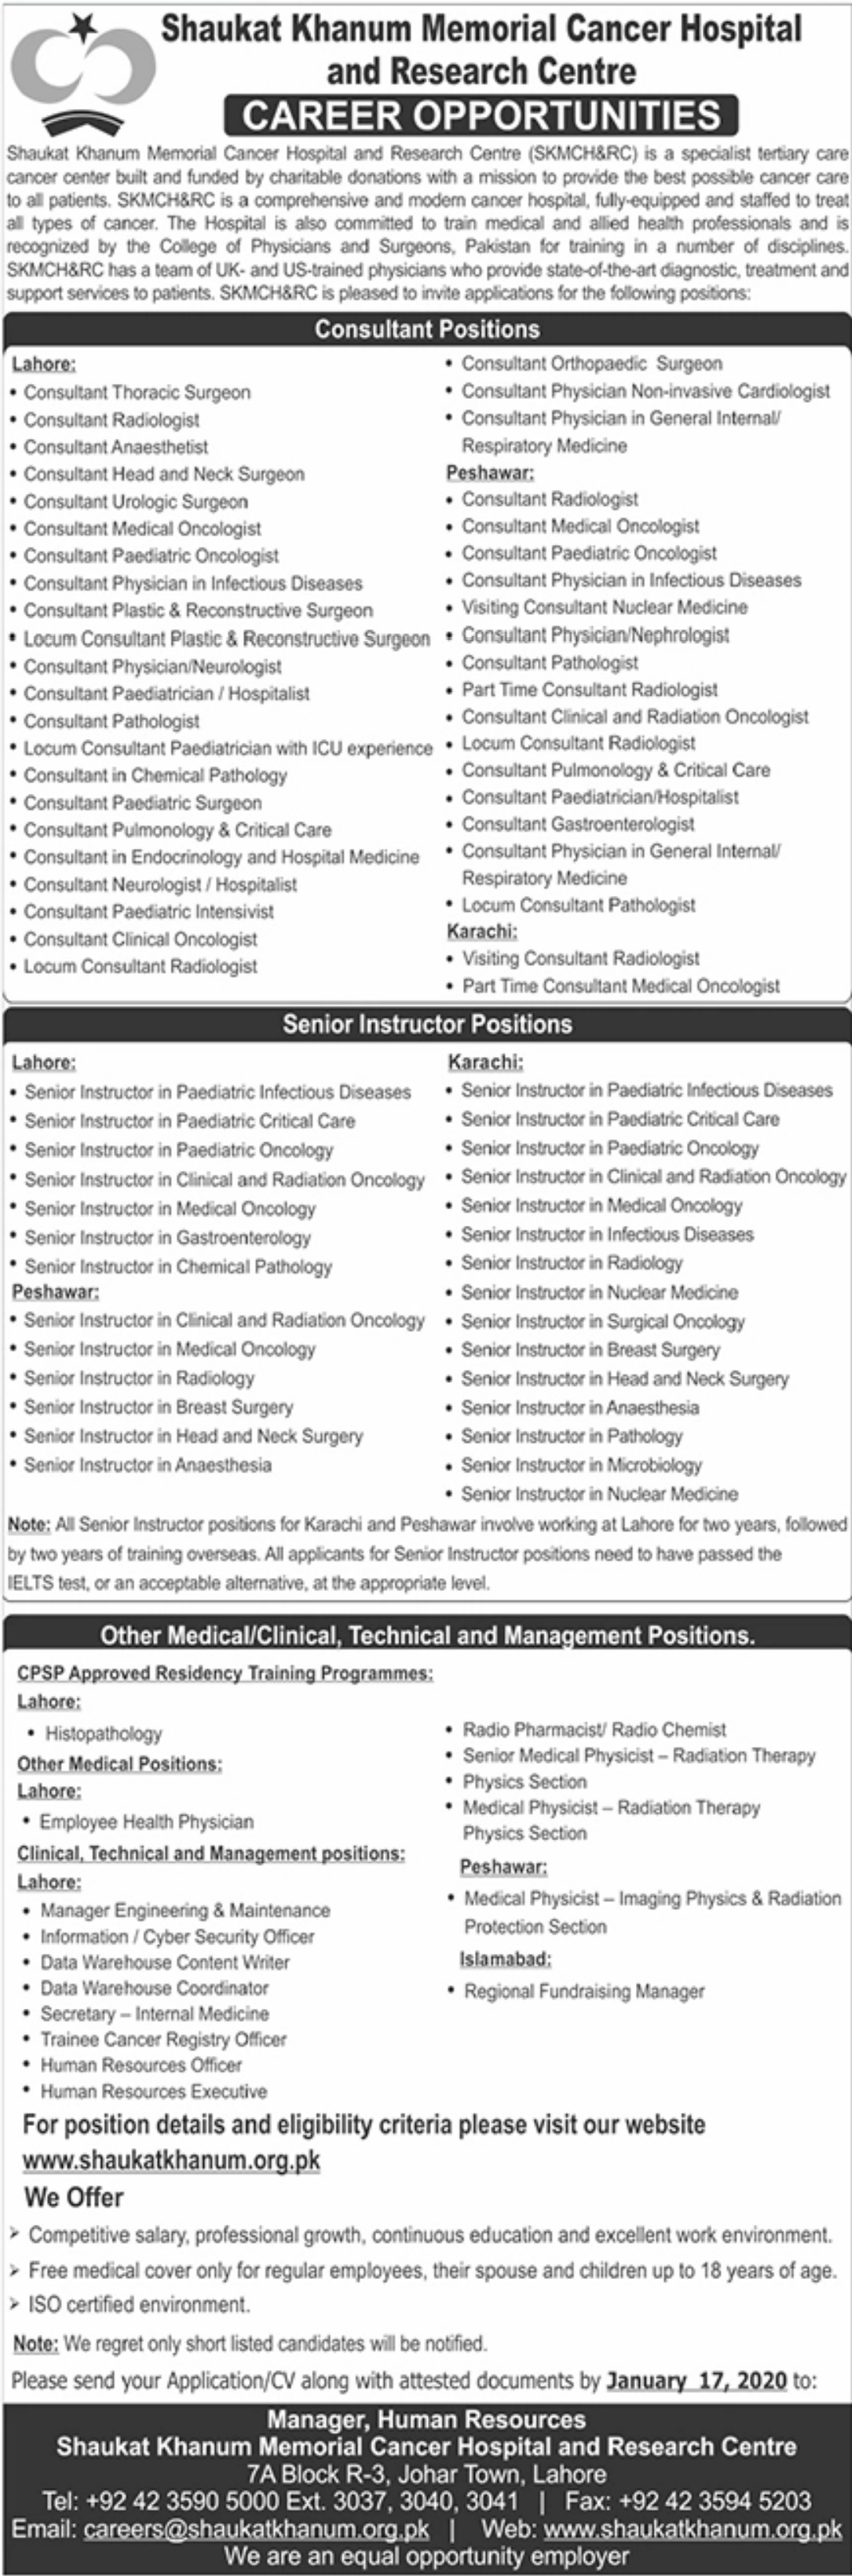 Shaukat Khanum Memorial & Cancer Hospital & Research Centre Jobs 2020